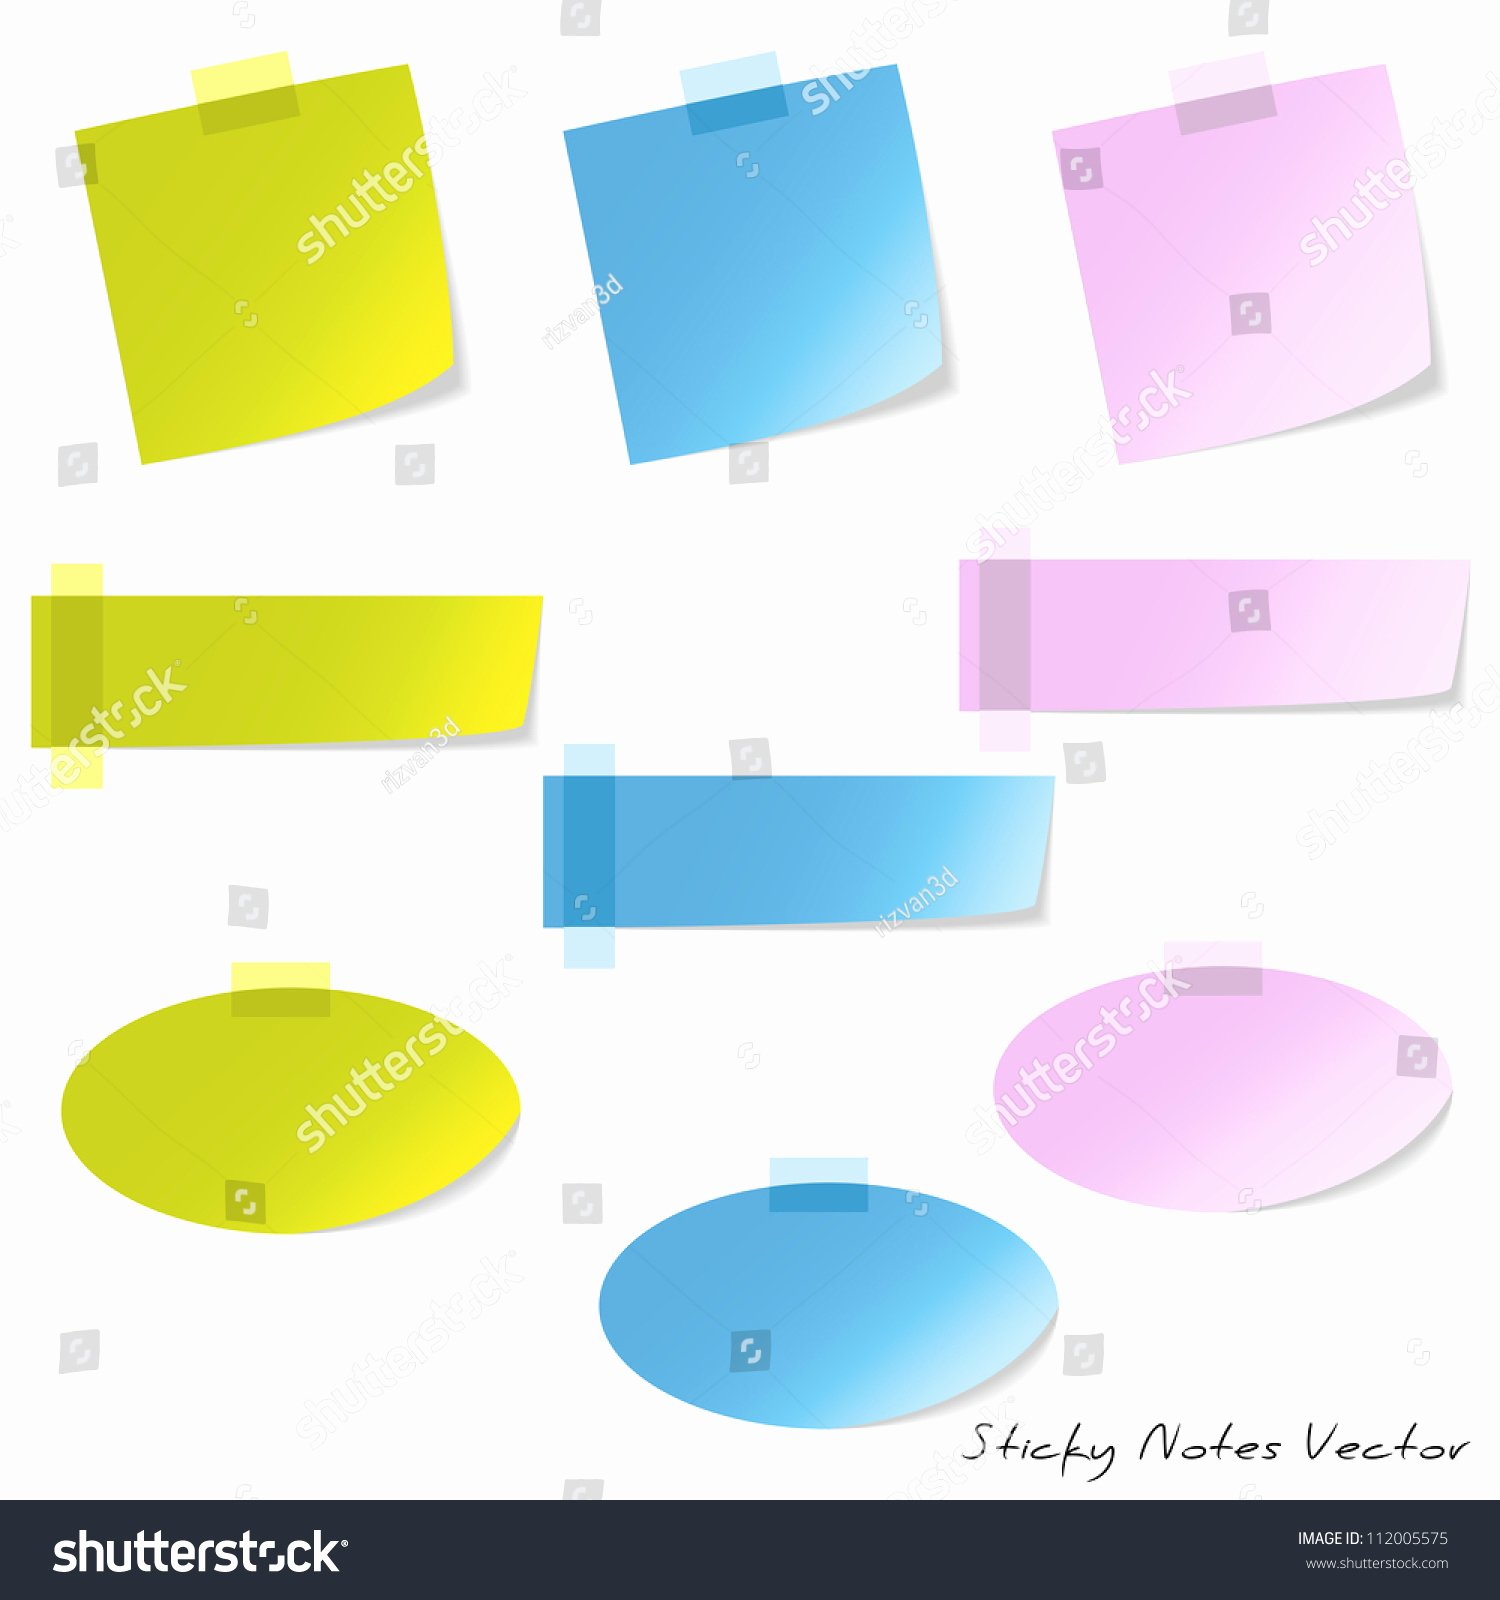 Sticky Notes Vector Awesome Sticky Notes Stock Vector Shutterstock